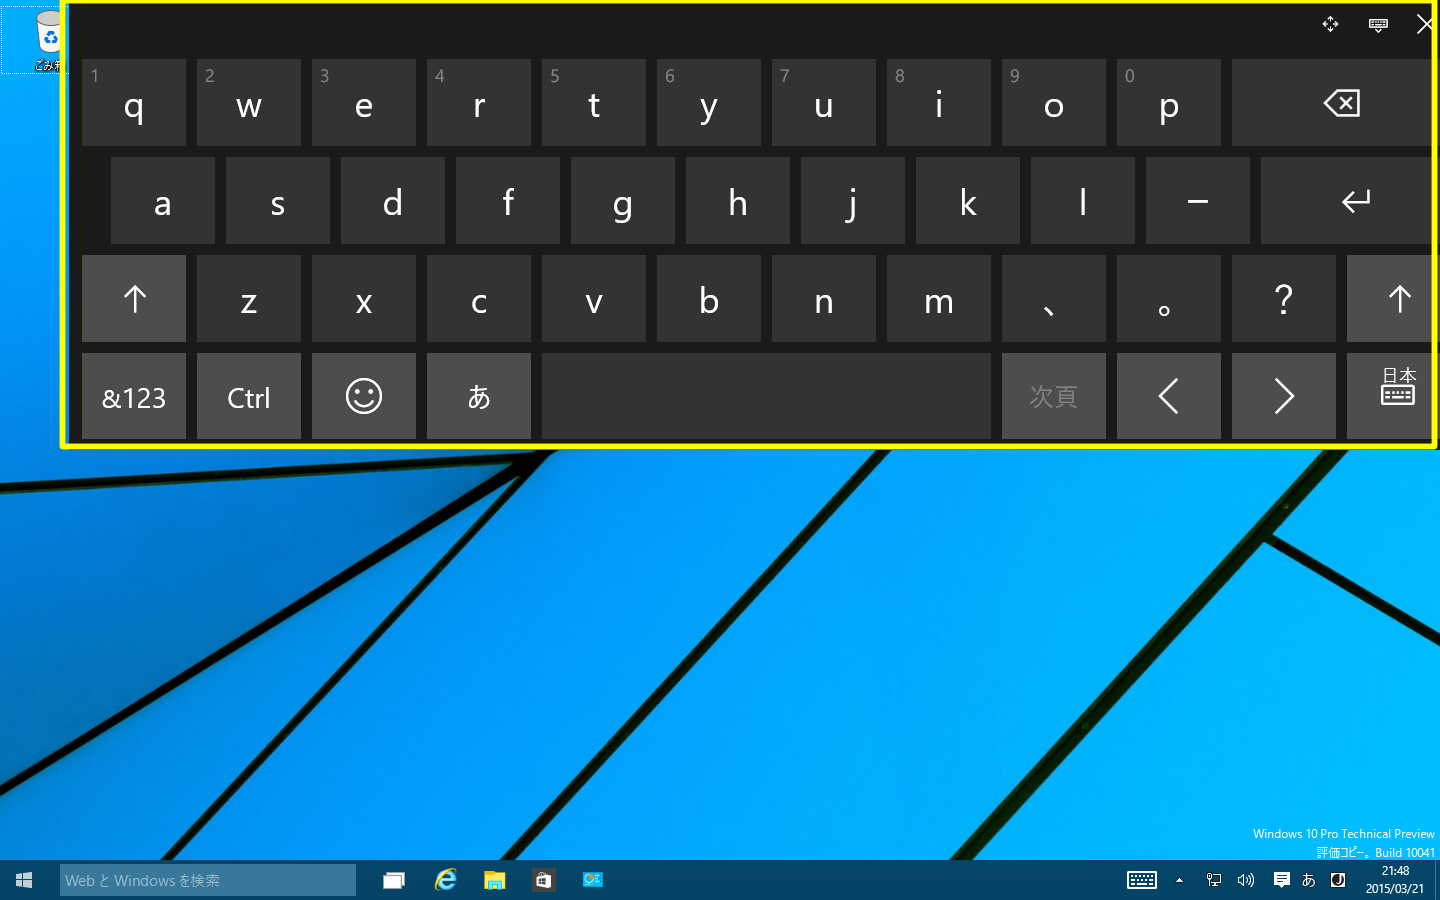 Windows 10 Technical Preview 2 (Build 10xxx)